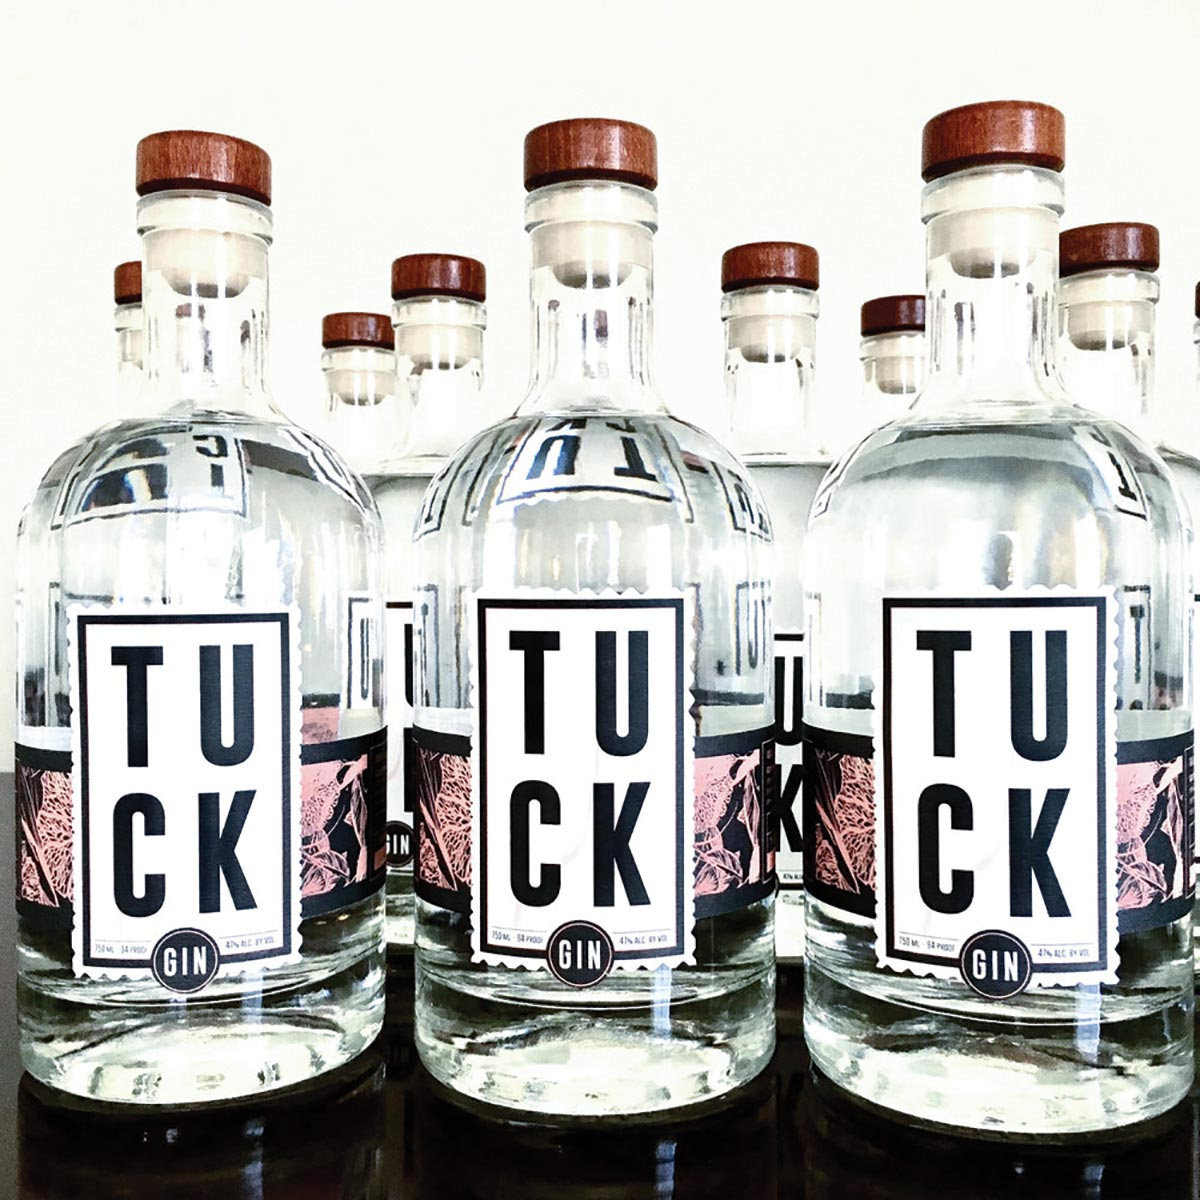 Hartley & Parker Adds Connecticut-Based TUCK Gin